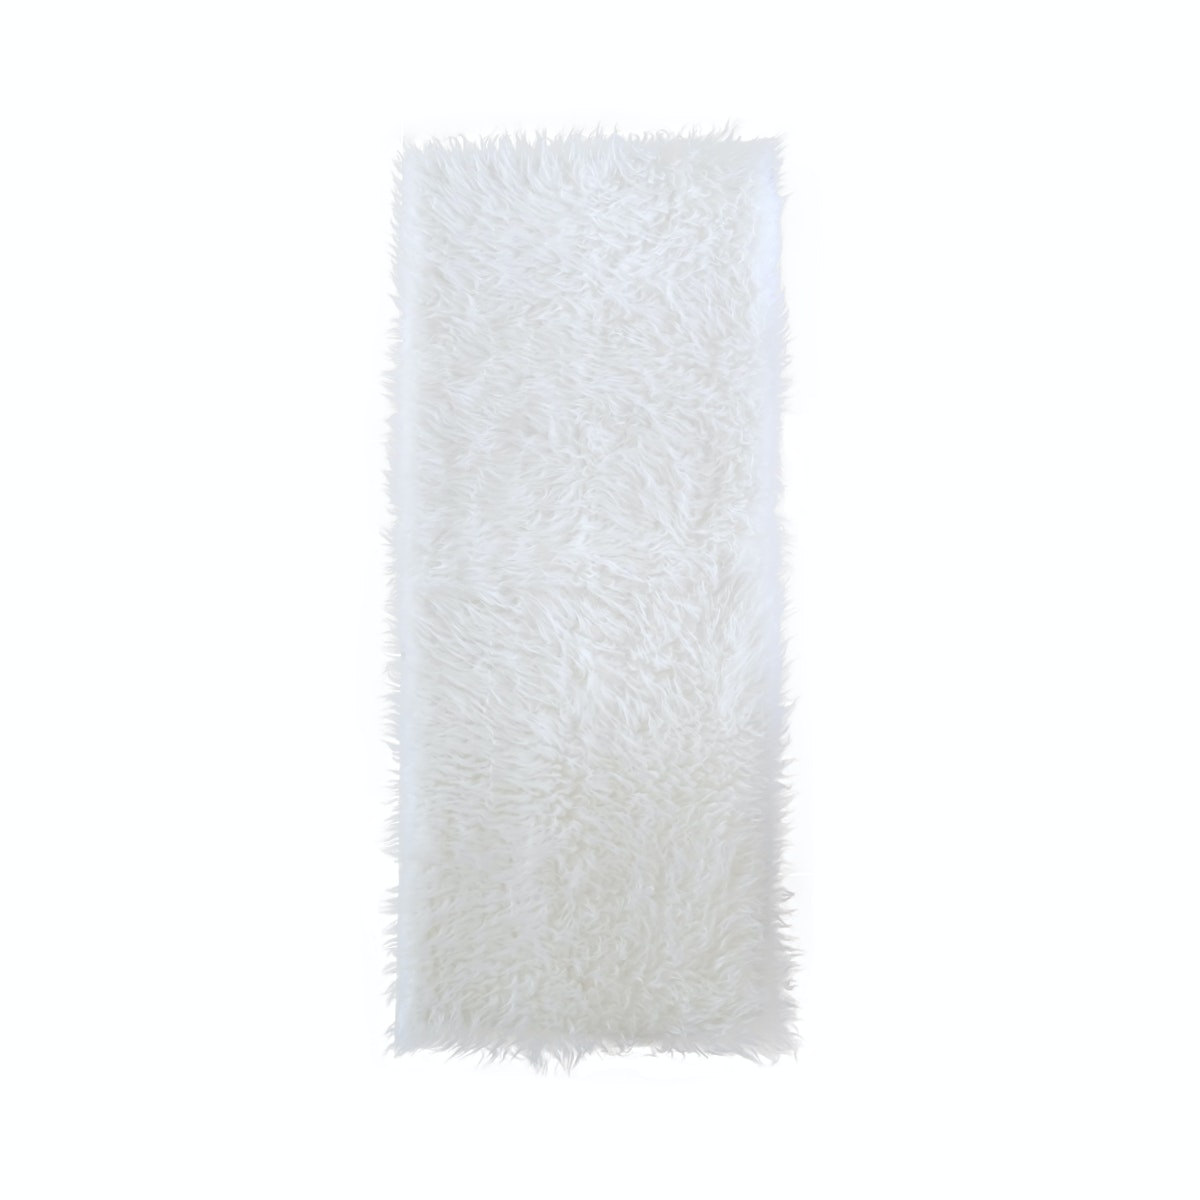 Eclectic Home Decor Fuzzyfur Throw blanket/Runner